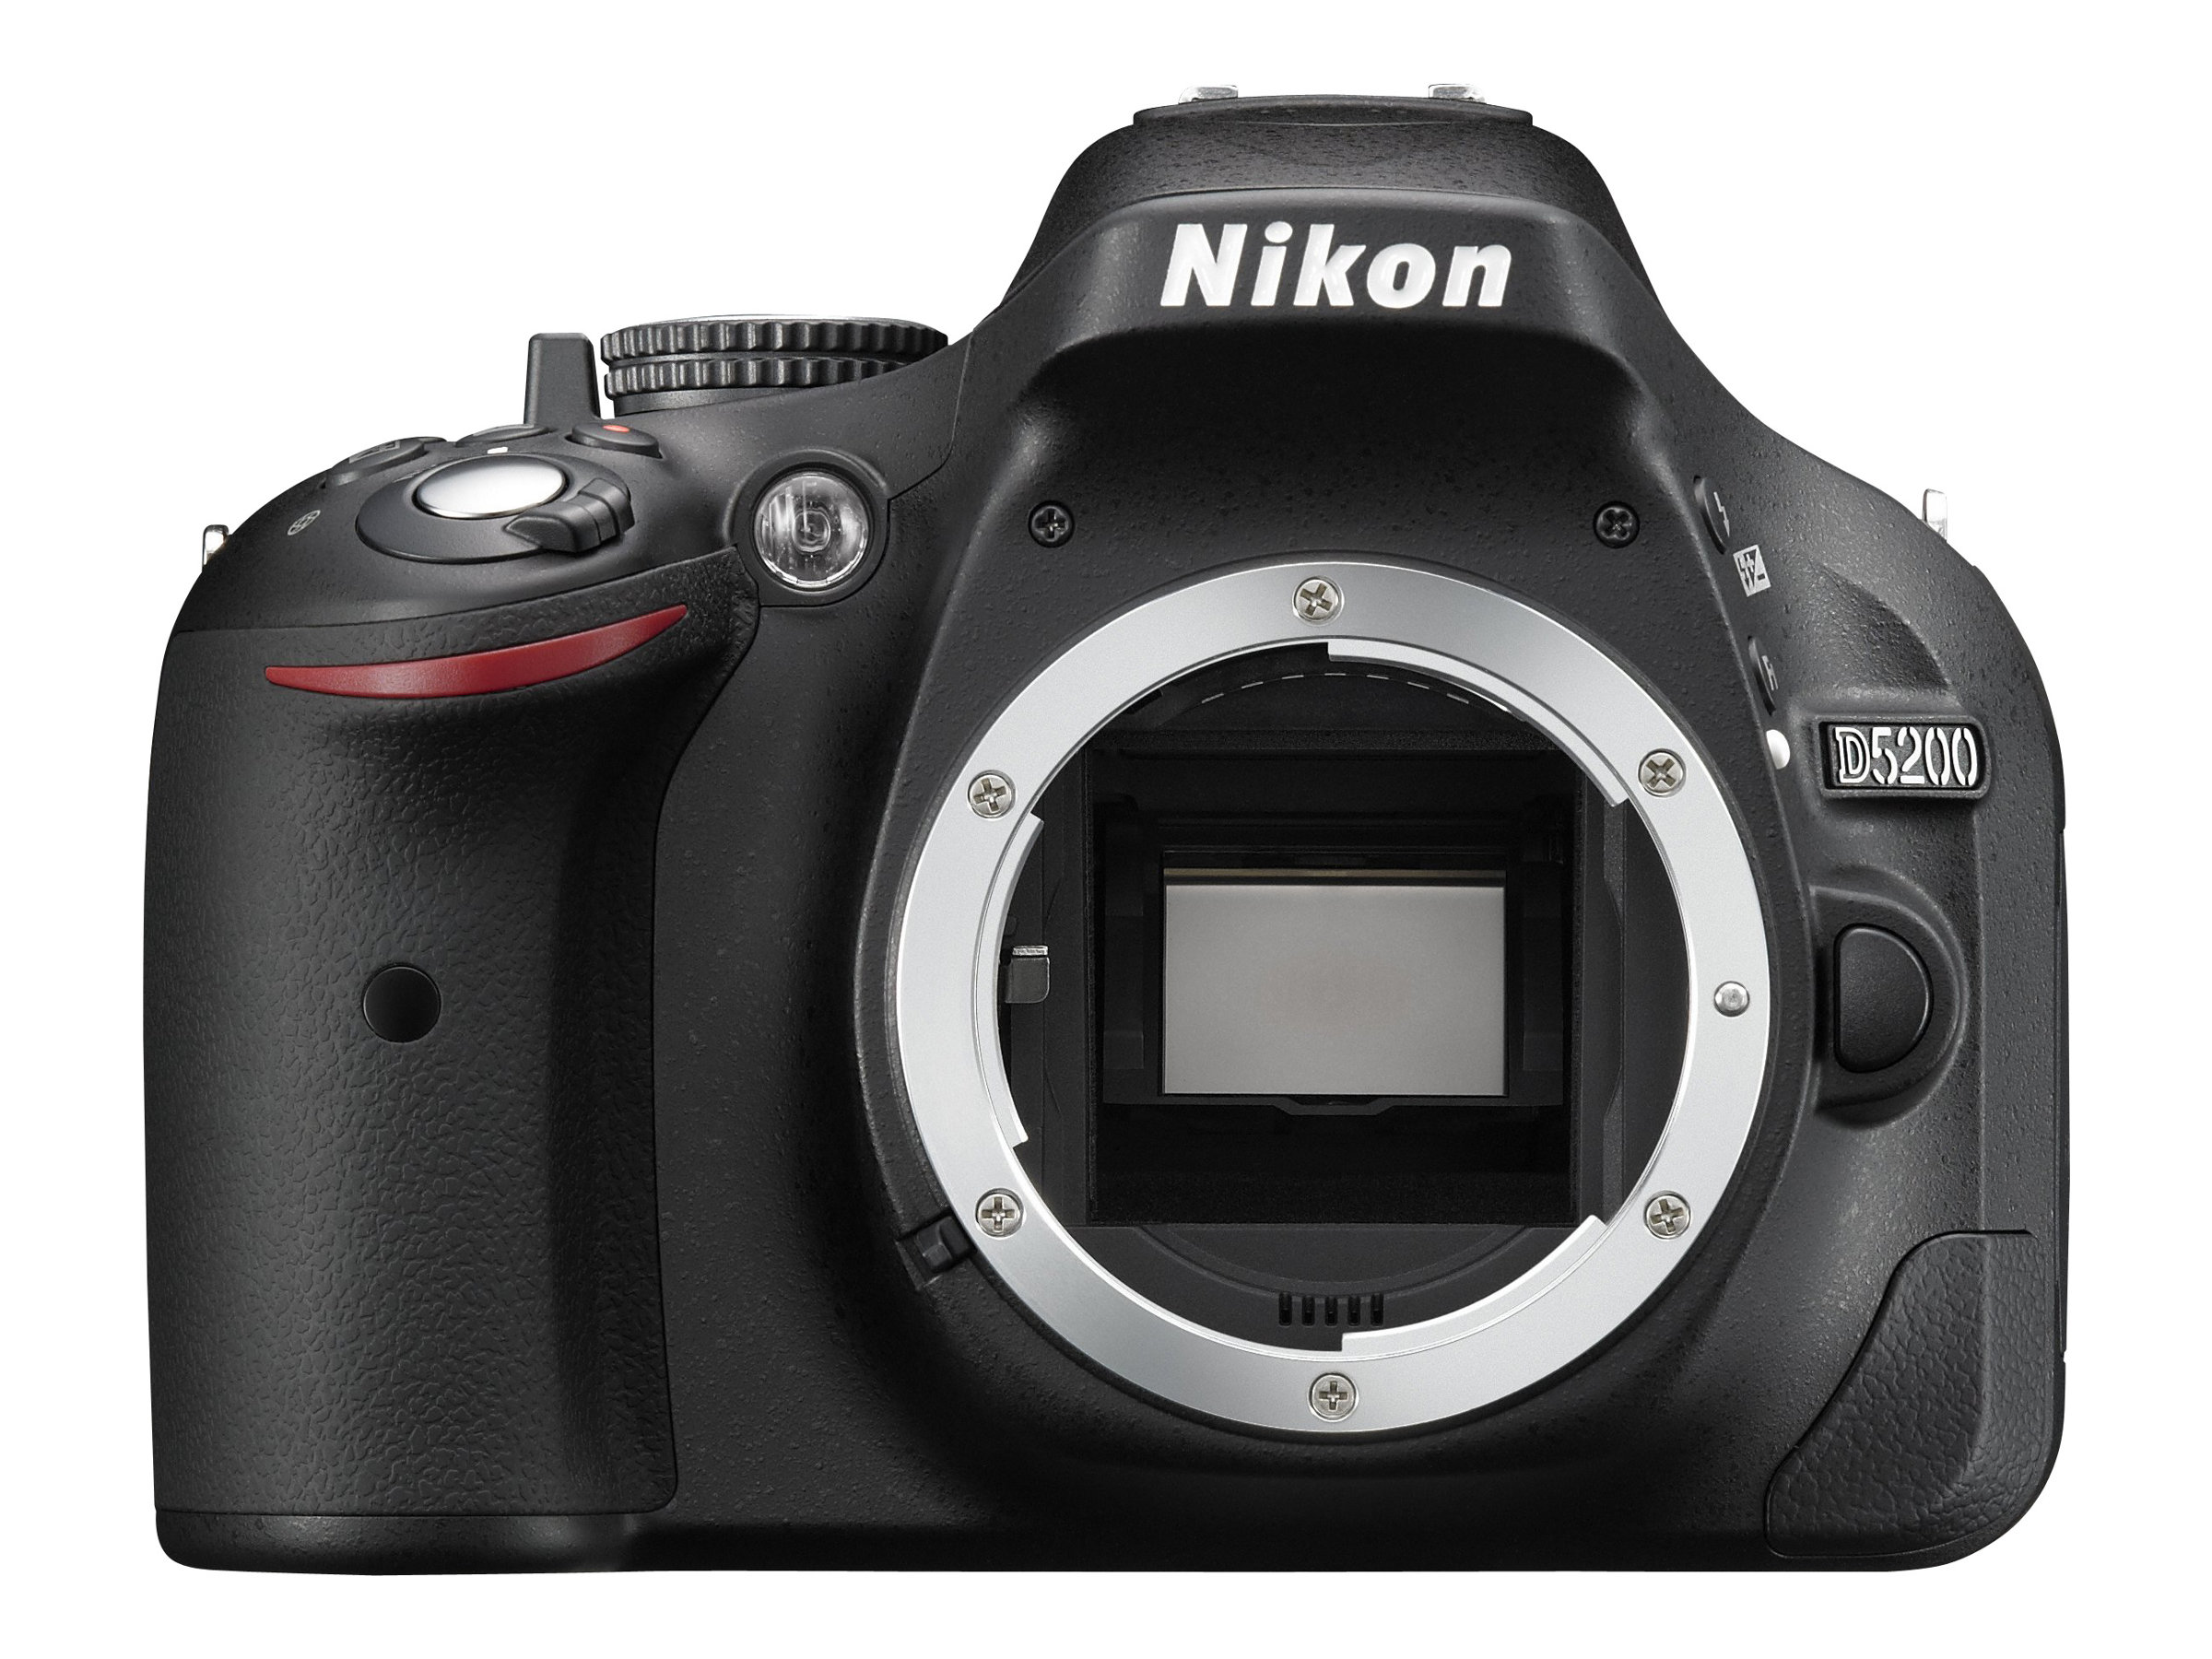 Nikon D5200 Digital SLR Camera, Black (Body Only), 1501, 15419031, Cameras - Digital - SLR